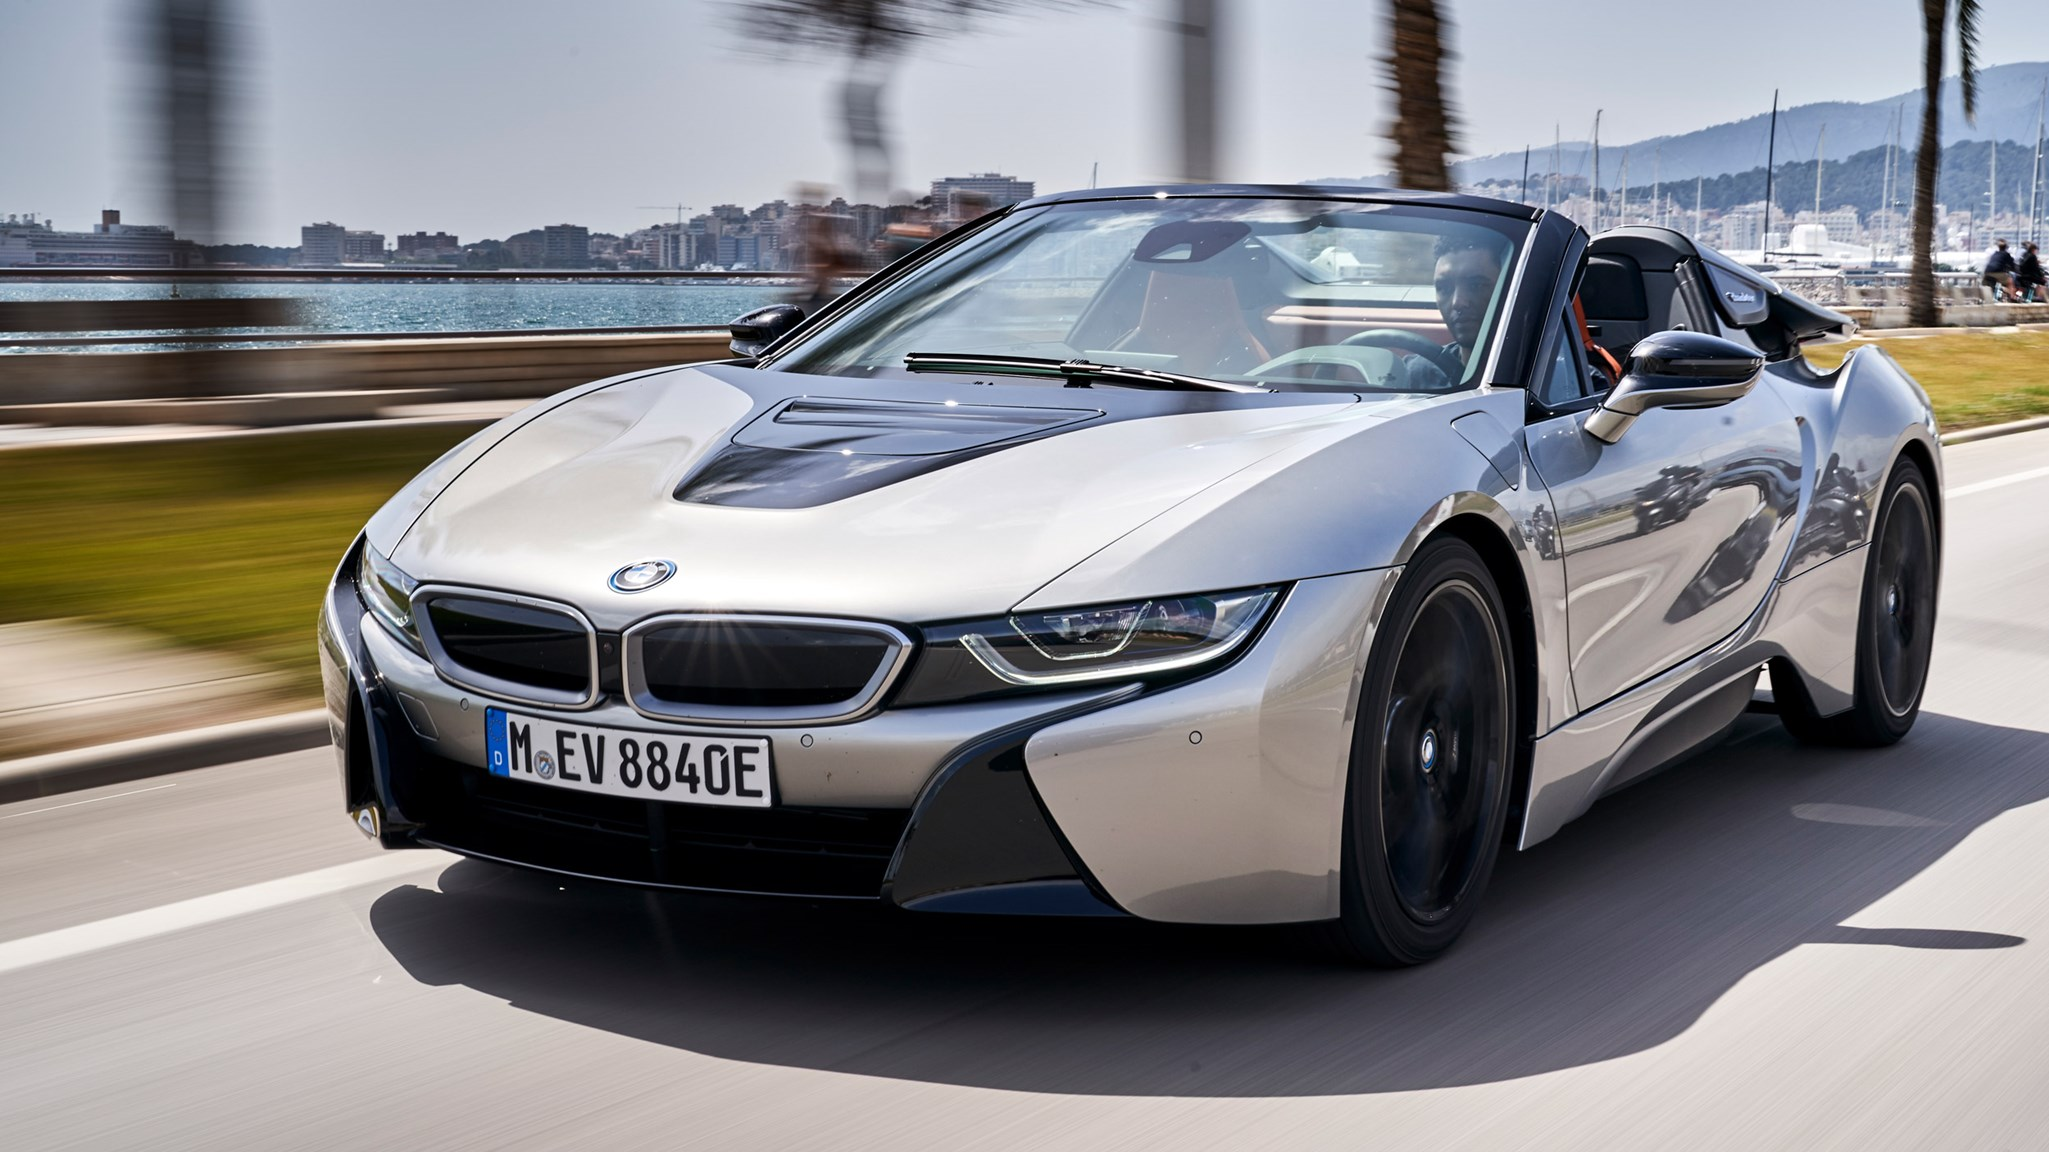 bmw i8 roadster review the hybrid supercar refined car magazine. Black Bedroom Furniture Sets. Home Design Ideas